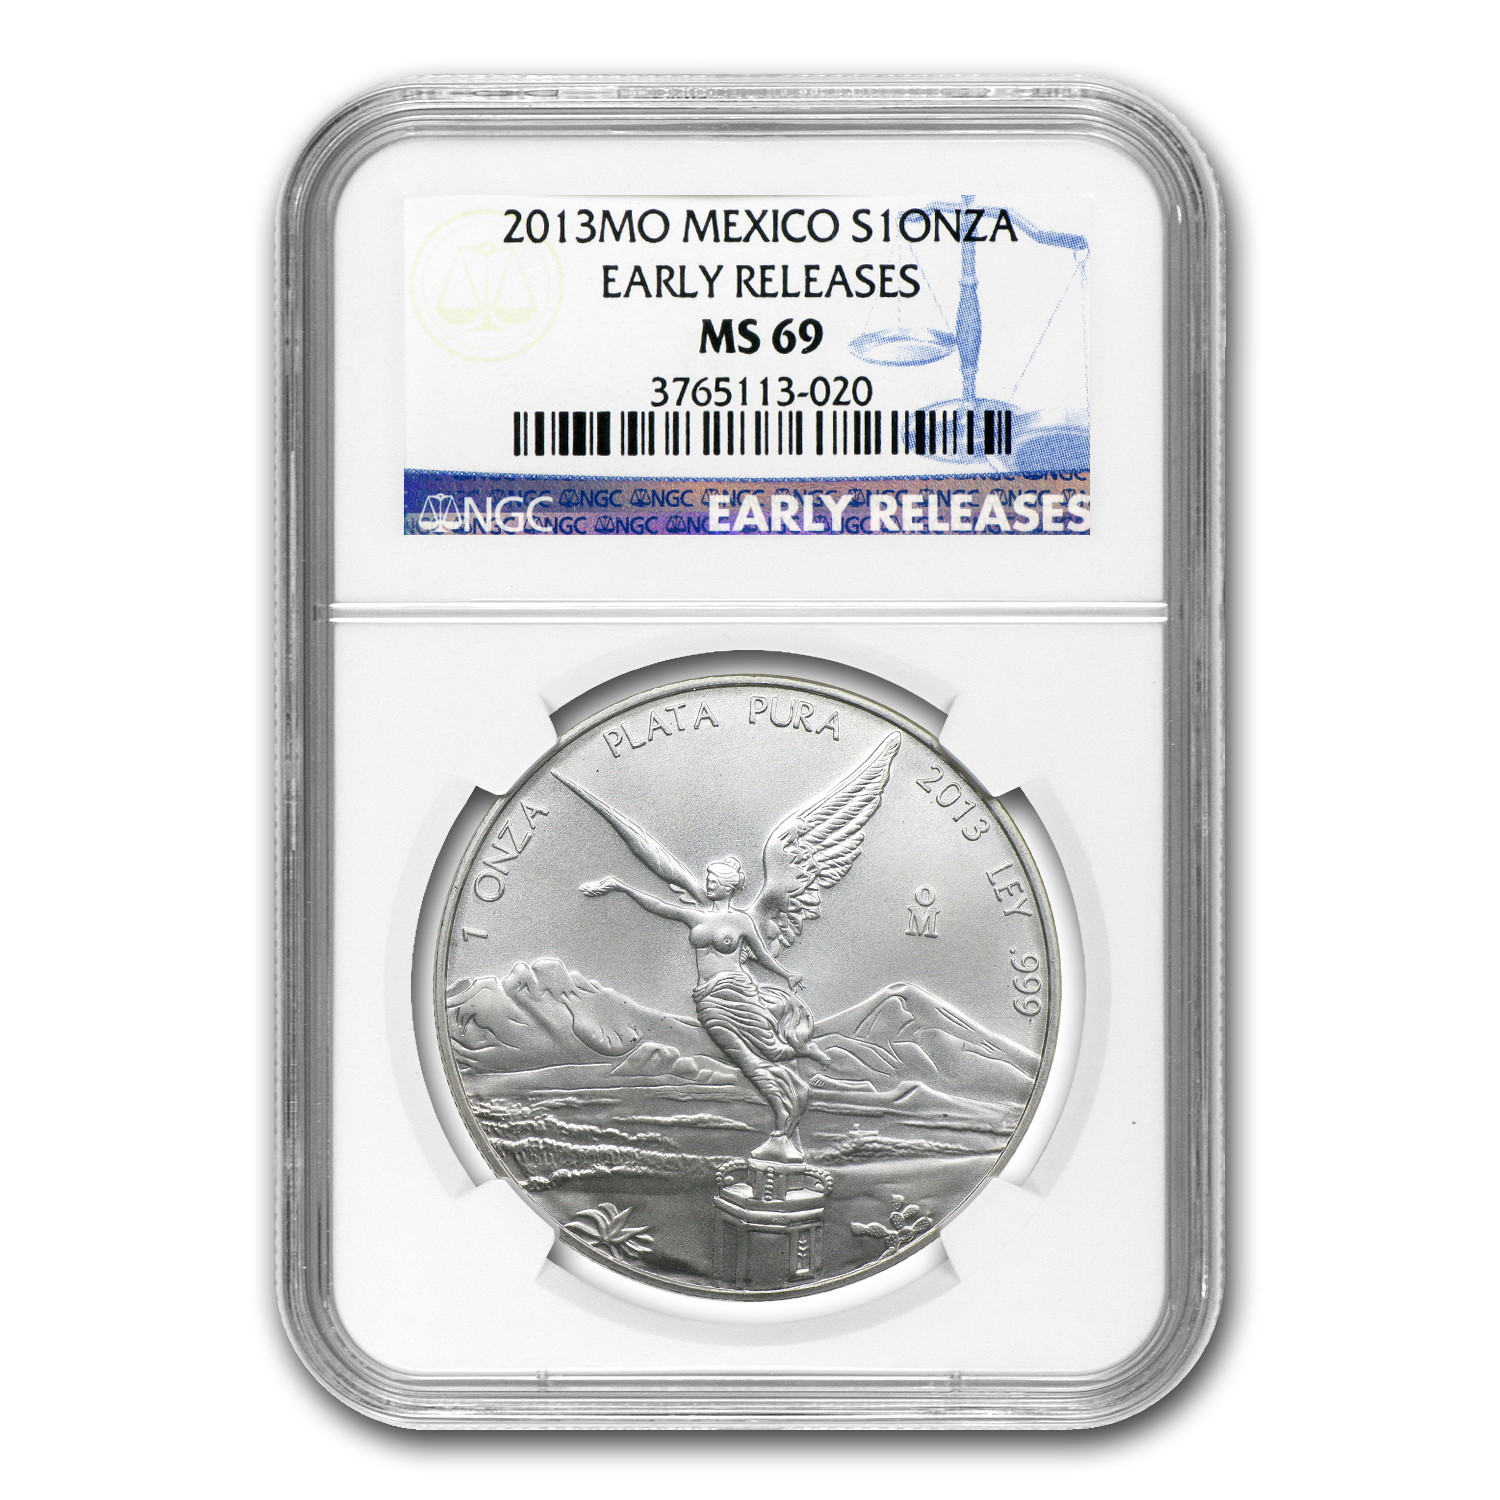 2013 1 oz Silver Mexican Libertad MS-69 NGC (Early Release)